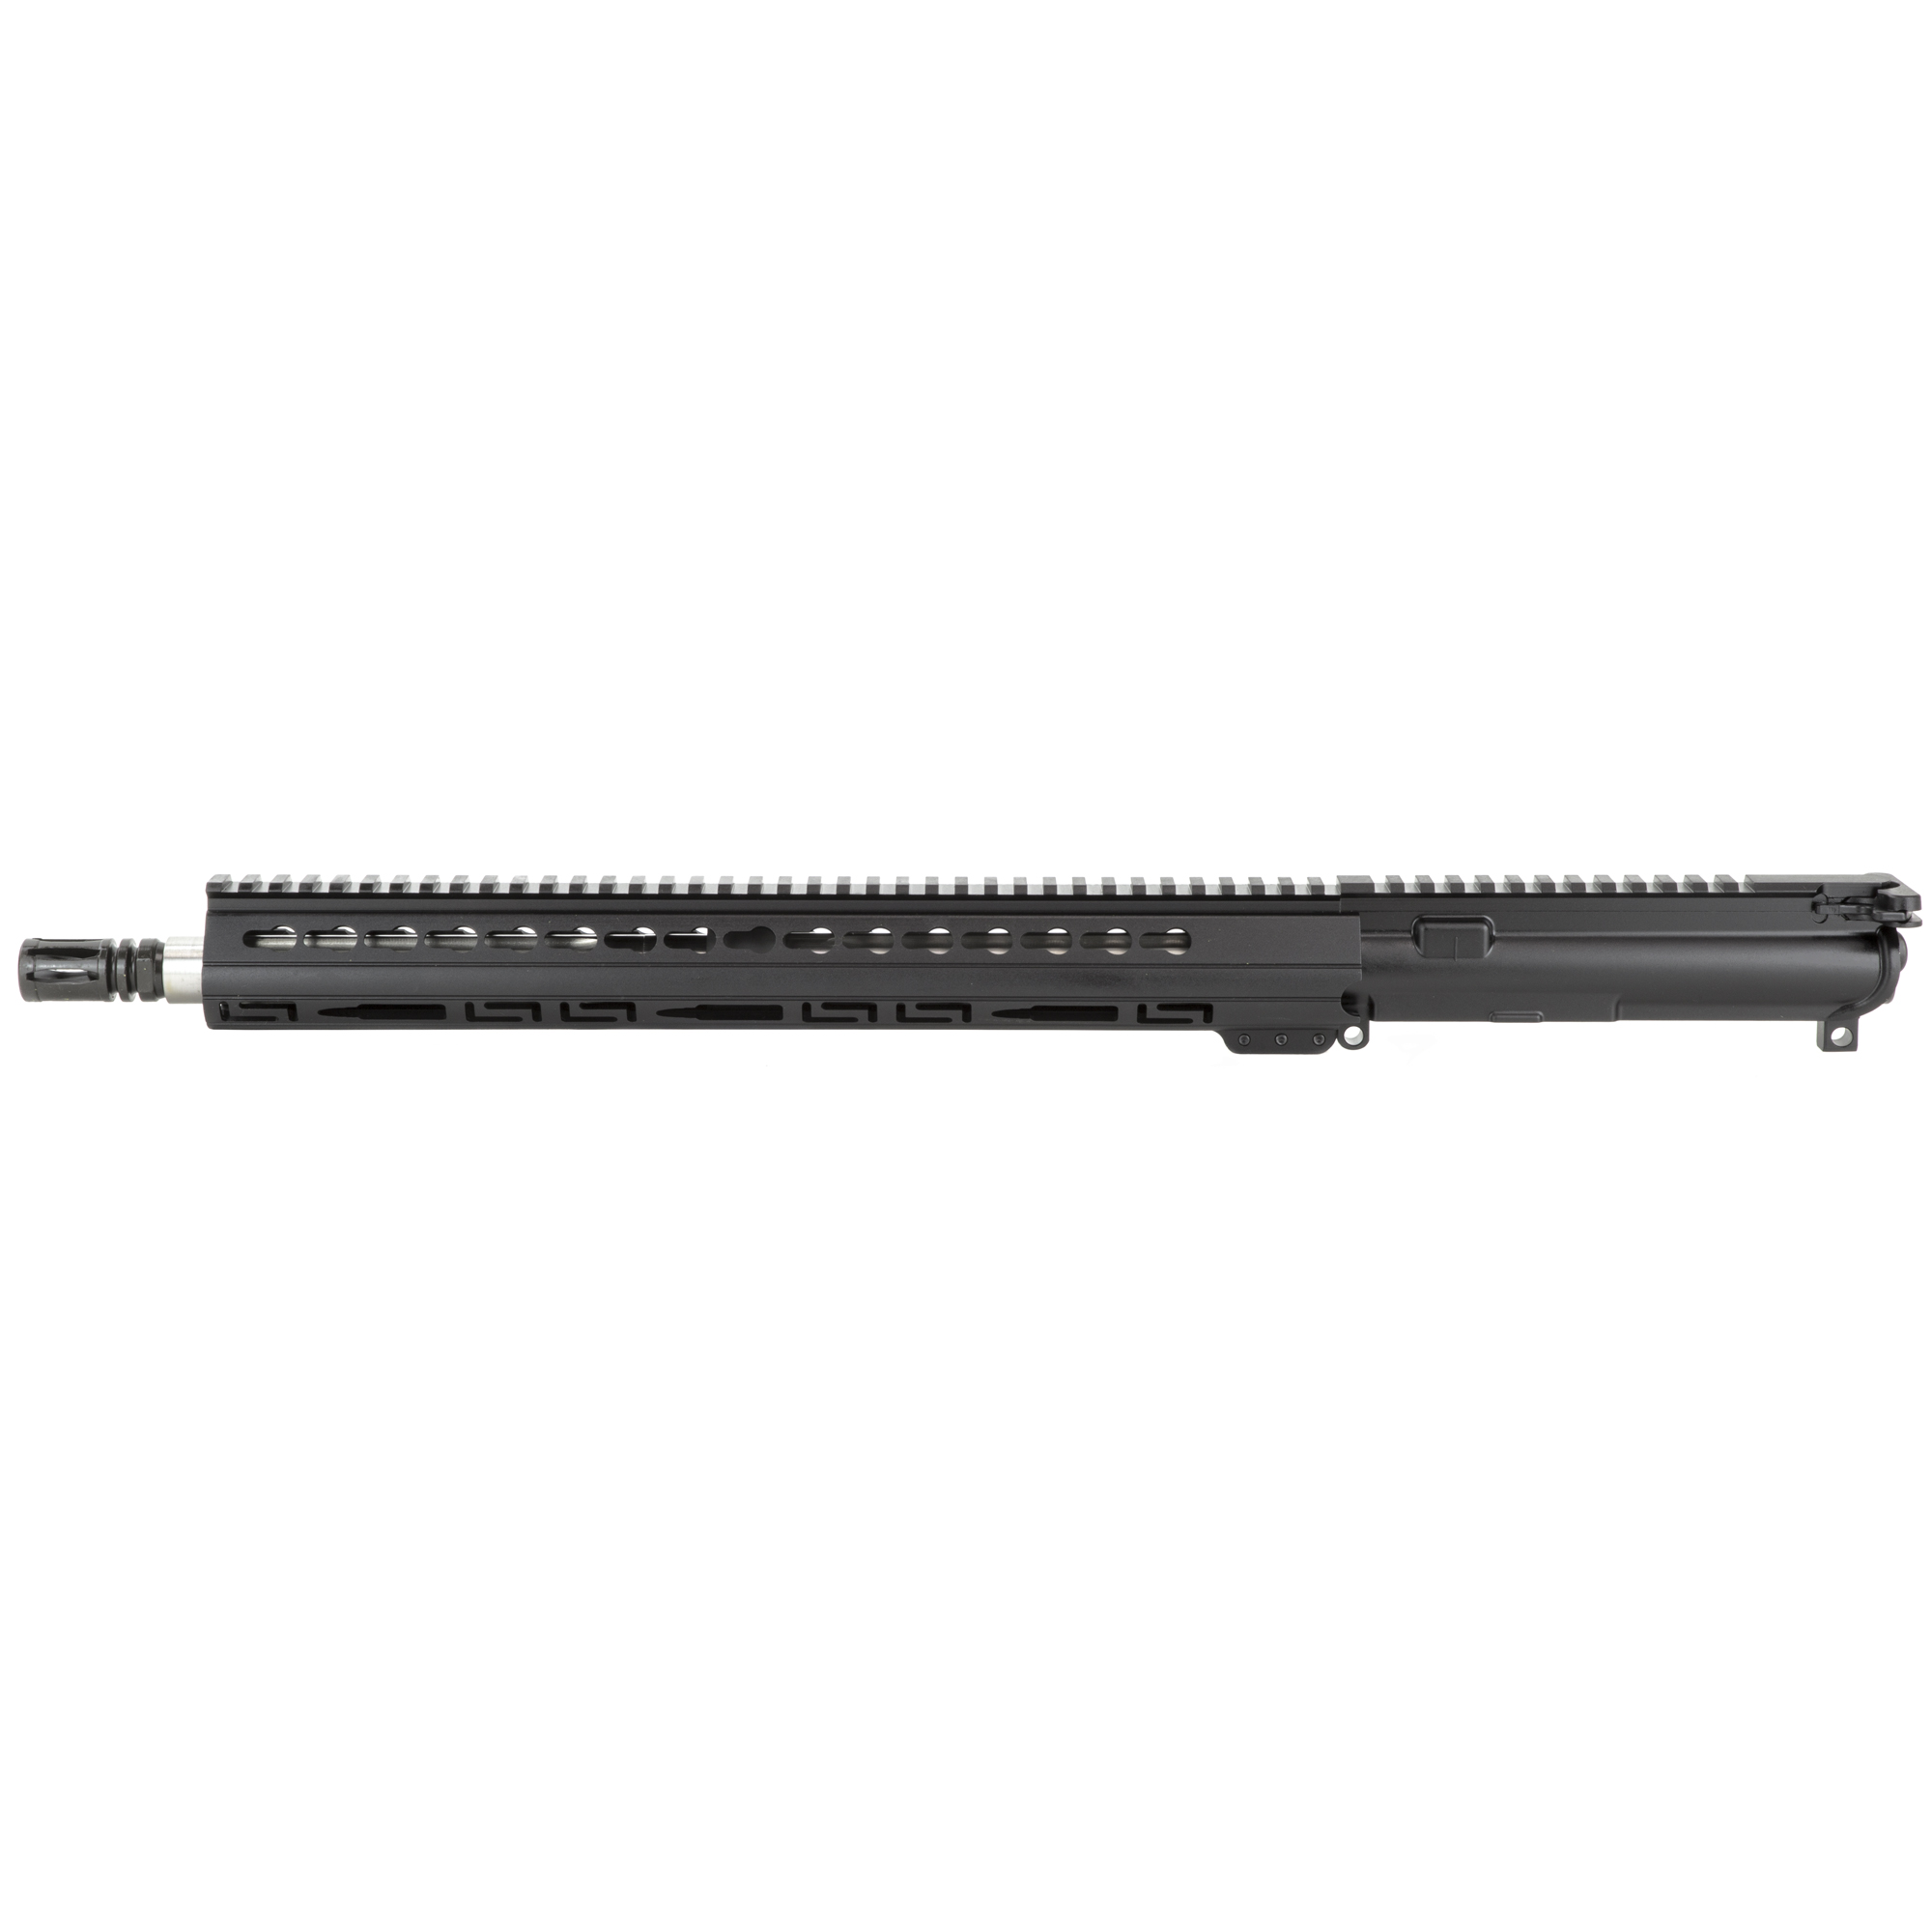 "The Luth-AR 16"" Fluted Bull Barrel Complete Upper Barrel Assembly Starts with a 16"""" .223 caliber fluted bull barrel made from 416 SST with a 1-9"" twist mated to our A3 Flattop receiver which includes a bolt carrier"" charging handle"" forward assist and ejection port cover. The upper is then topped off with a lo-profile gas system and an ergonomic 15"" Palm Handguard(R) with KeyMod slots and a Picatinny top-rail."